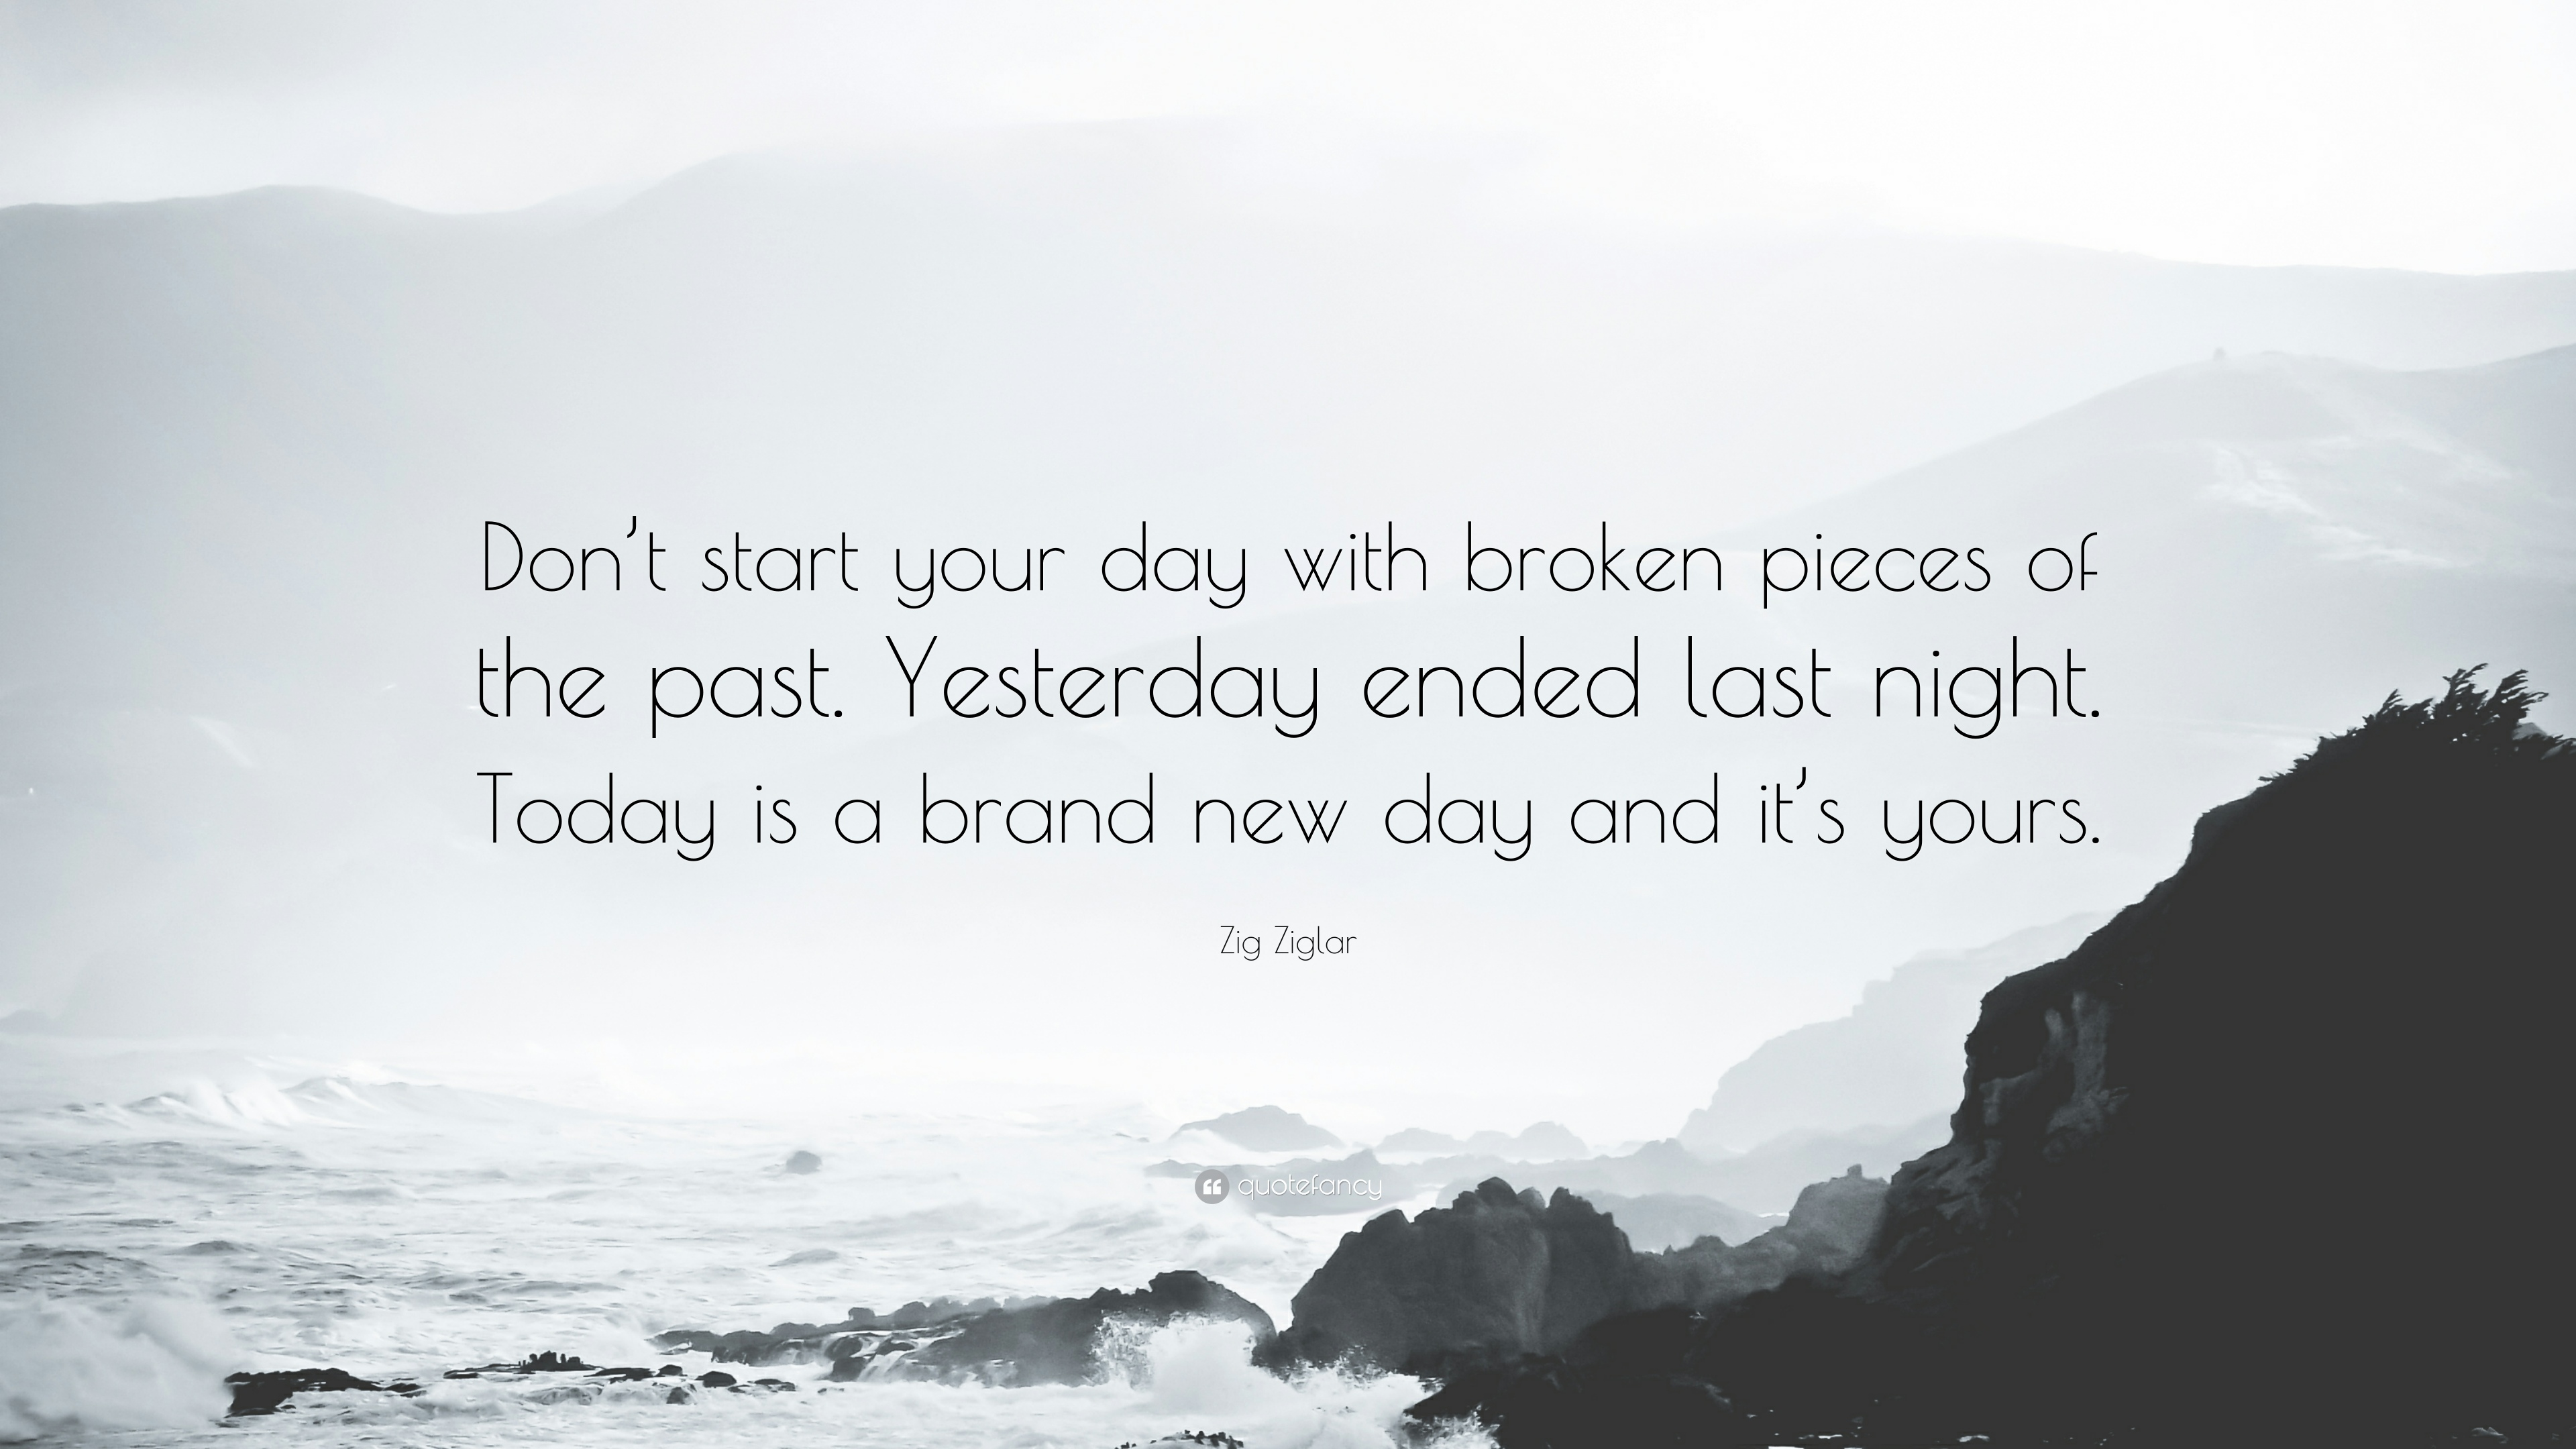 High Quality Zig Ziglar Quote: U201cDonu0027t Start Your Day With Broken Pieces Of The